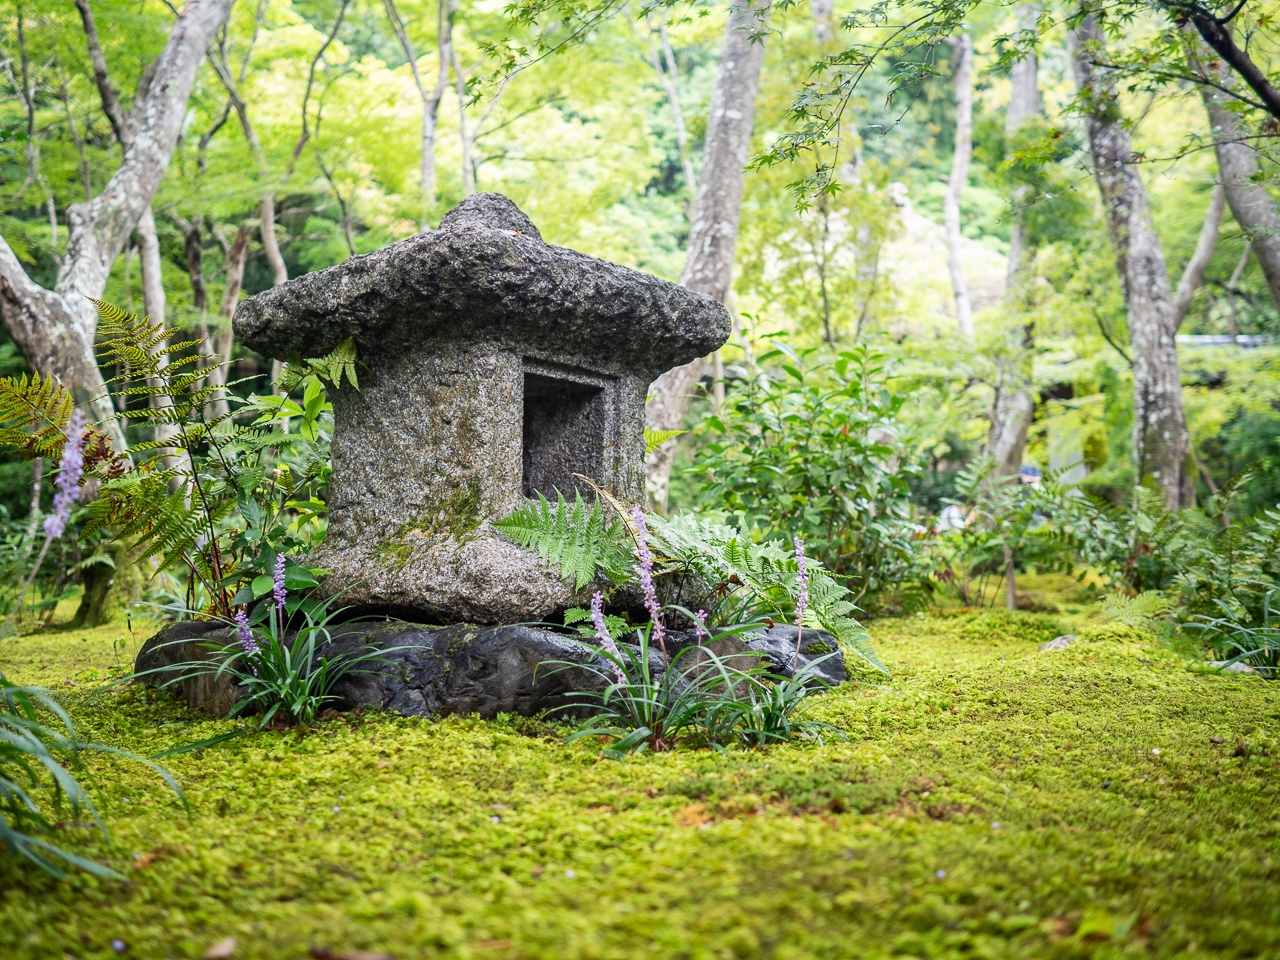 Gio-ji, an ancient Buddhist temple in Kyoto, Japan.